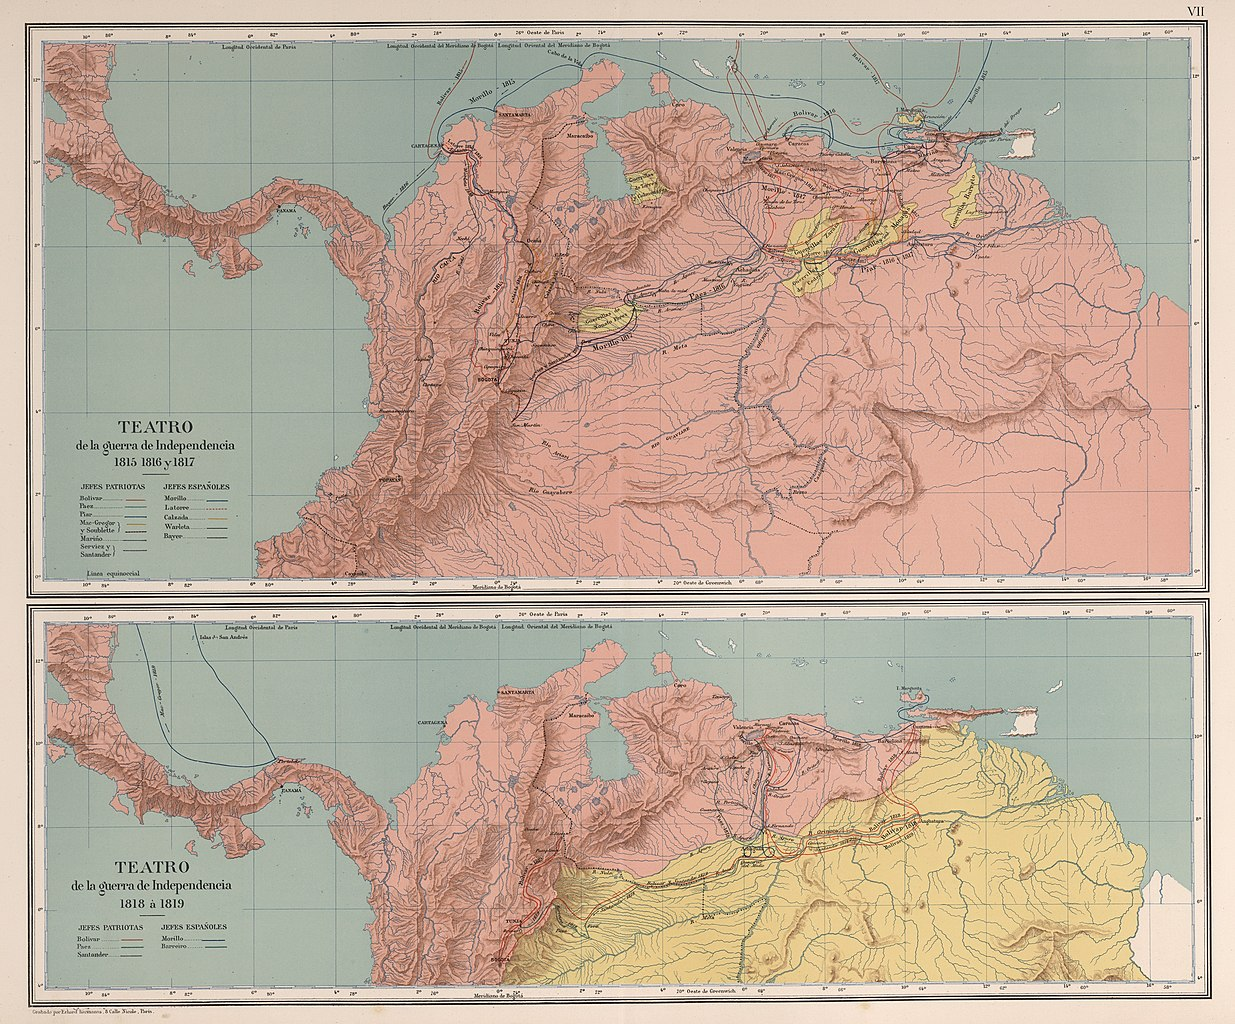 File Aghrc 1890 Carta Vii Guerras De Independencia En Colombia 1815 1819 Jpg Wikimedia Commons